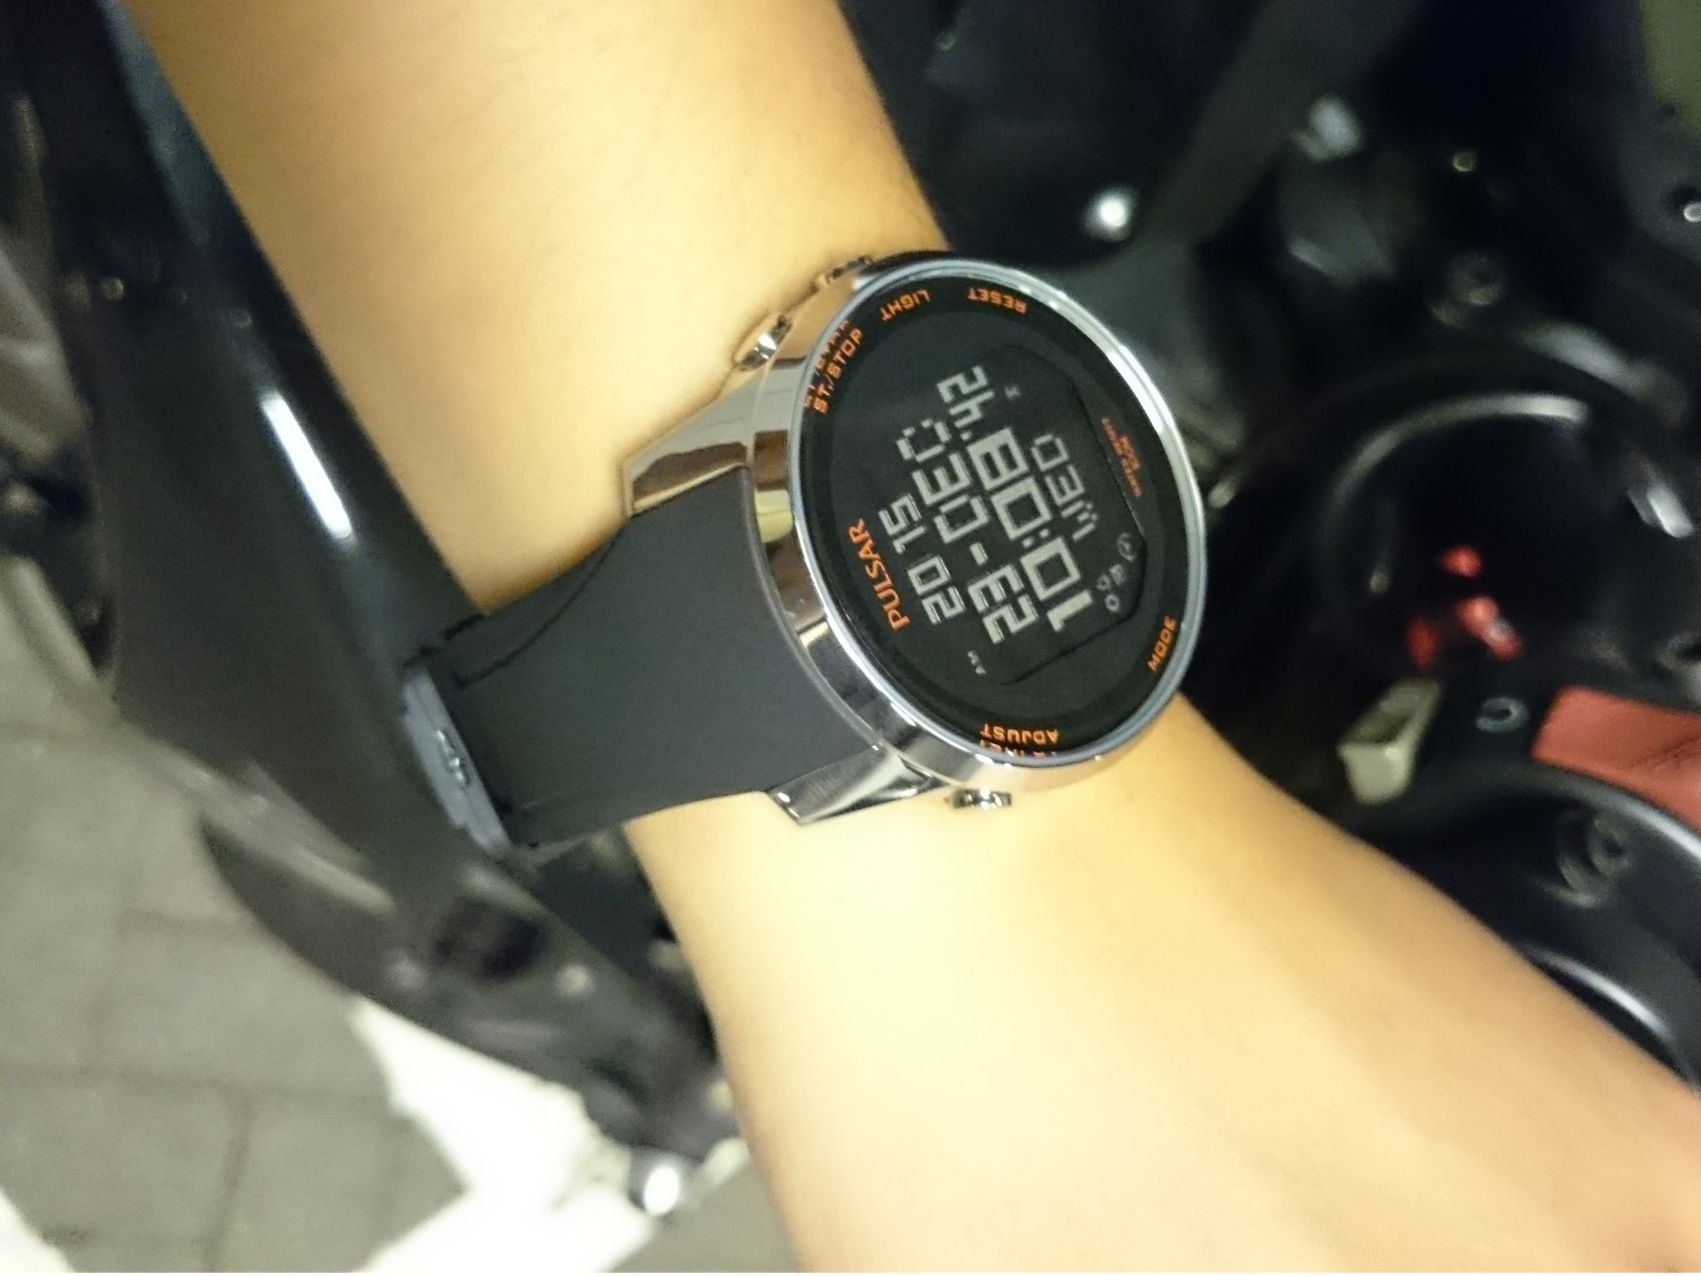 t pin digital pulsar watch racing speed don love model of sense out watches auto miss